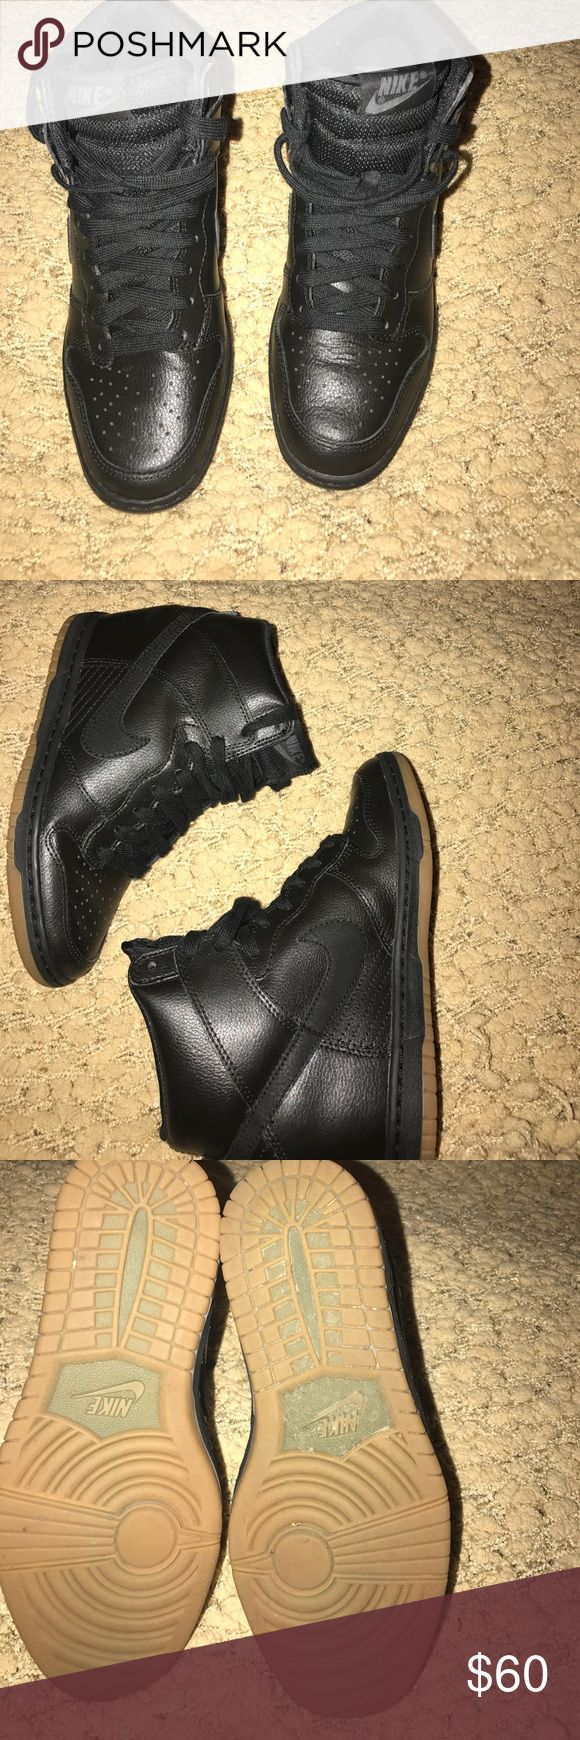 Nike wedge tennis shoe Black leather Nike Dunk SkyHi Shoes are in excellent condition basically new Nike Shoes Sneakers